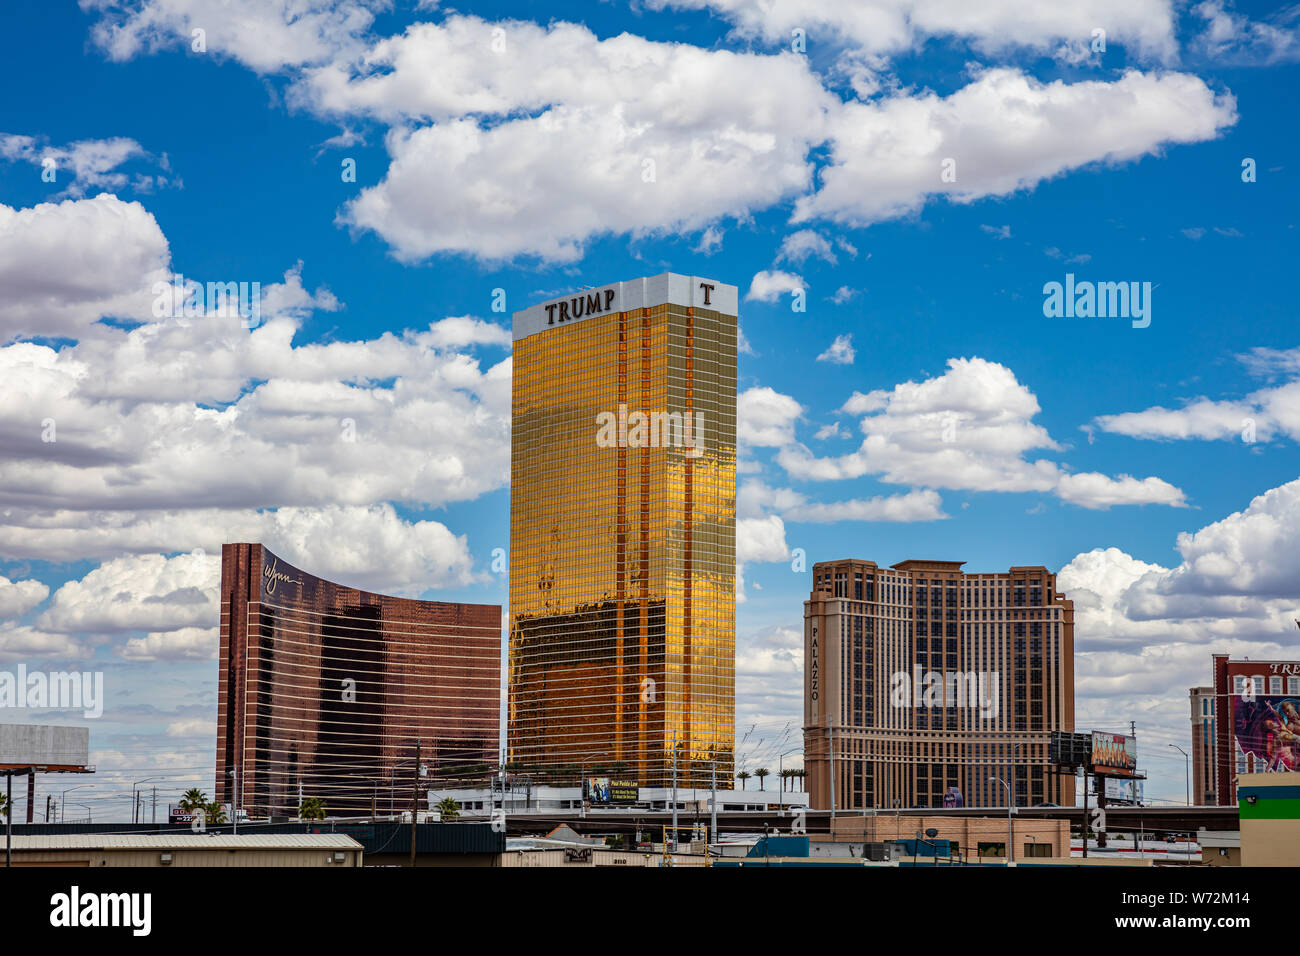 Las Vegas Nevada, USA. May 28, 2019. Trump tower gold facade shining in the morning. Sunny spring day, blue sky with clouds Stock Photo